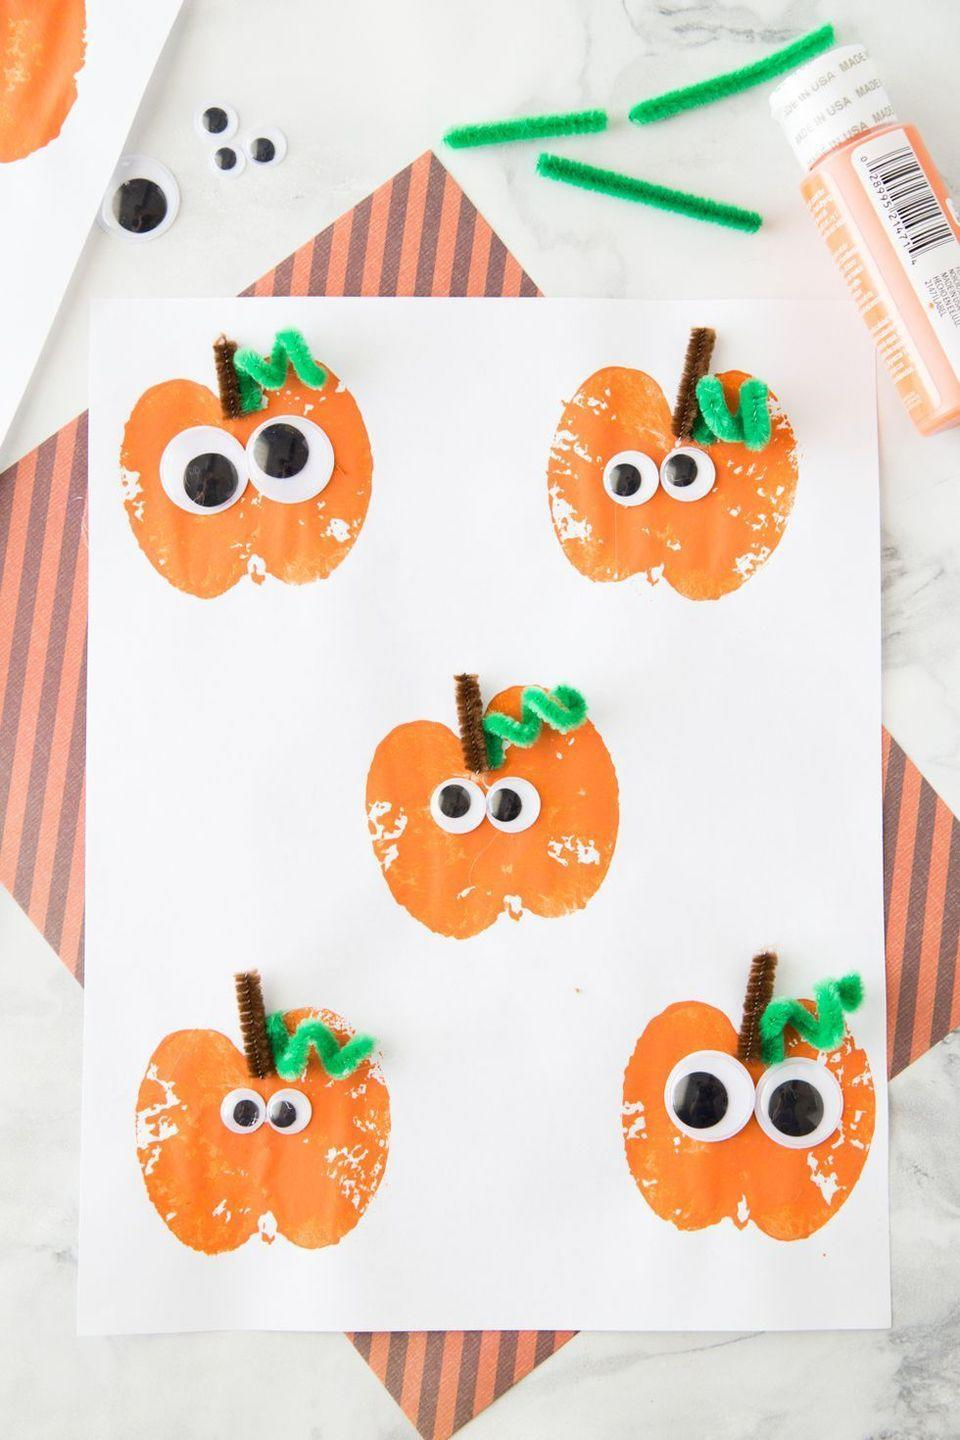 """<p>Take a few leftover apples from your orchard haul and turn them into adorable pumpkin-shaped stamps. Then bring your pumpkin shapes to life with pipe cleaners and googly eyes. </p><p><em><a href=""""https://www.madetobeamomma.com/apple-stamping-pumpkin-craft/"""" rel=""""nofollow noopener"""" target=""""_blank"""" data-ylk=""""slk:Get the tutorial at Made to be a Momma »"""" class=""""link rapid-noclick-resp"""">Get the tutorial at Made to be a Momma »</a></em></p>"""